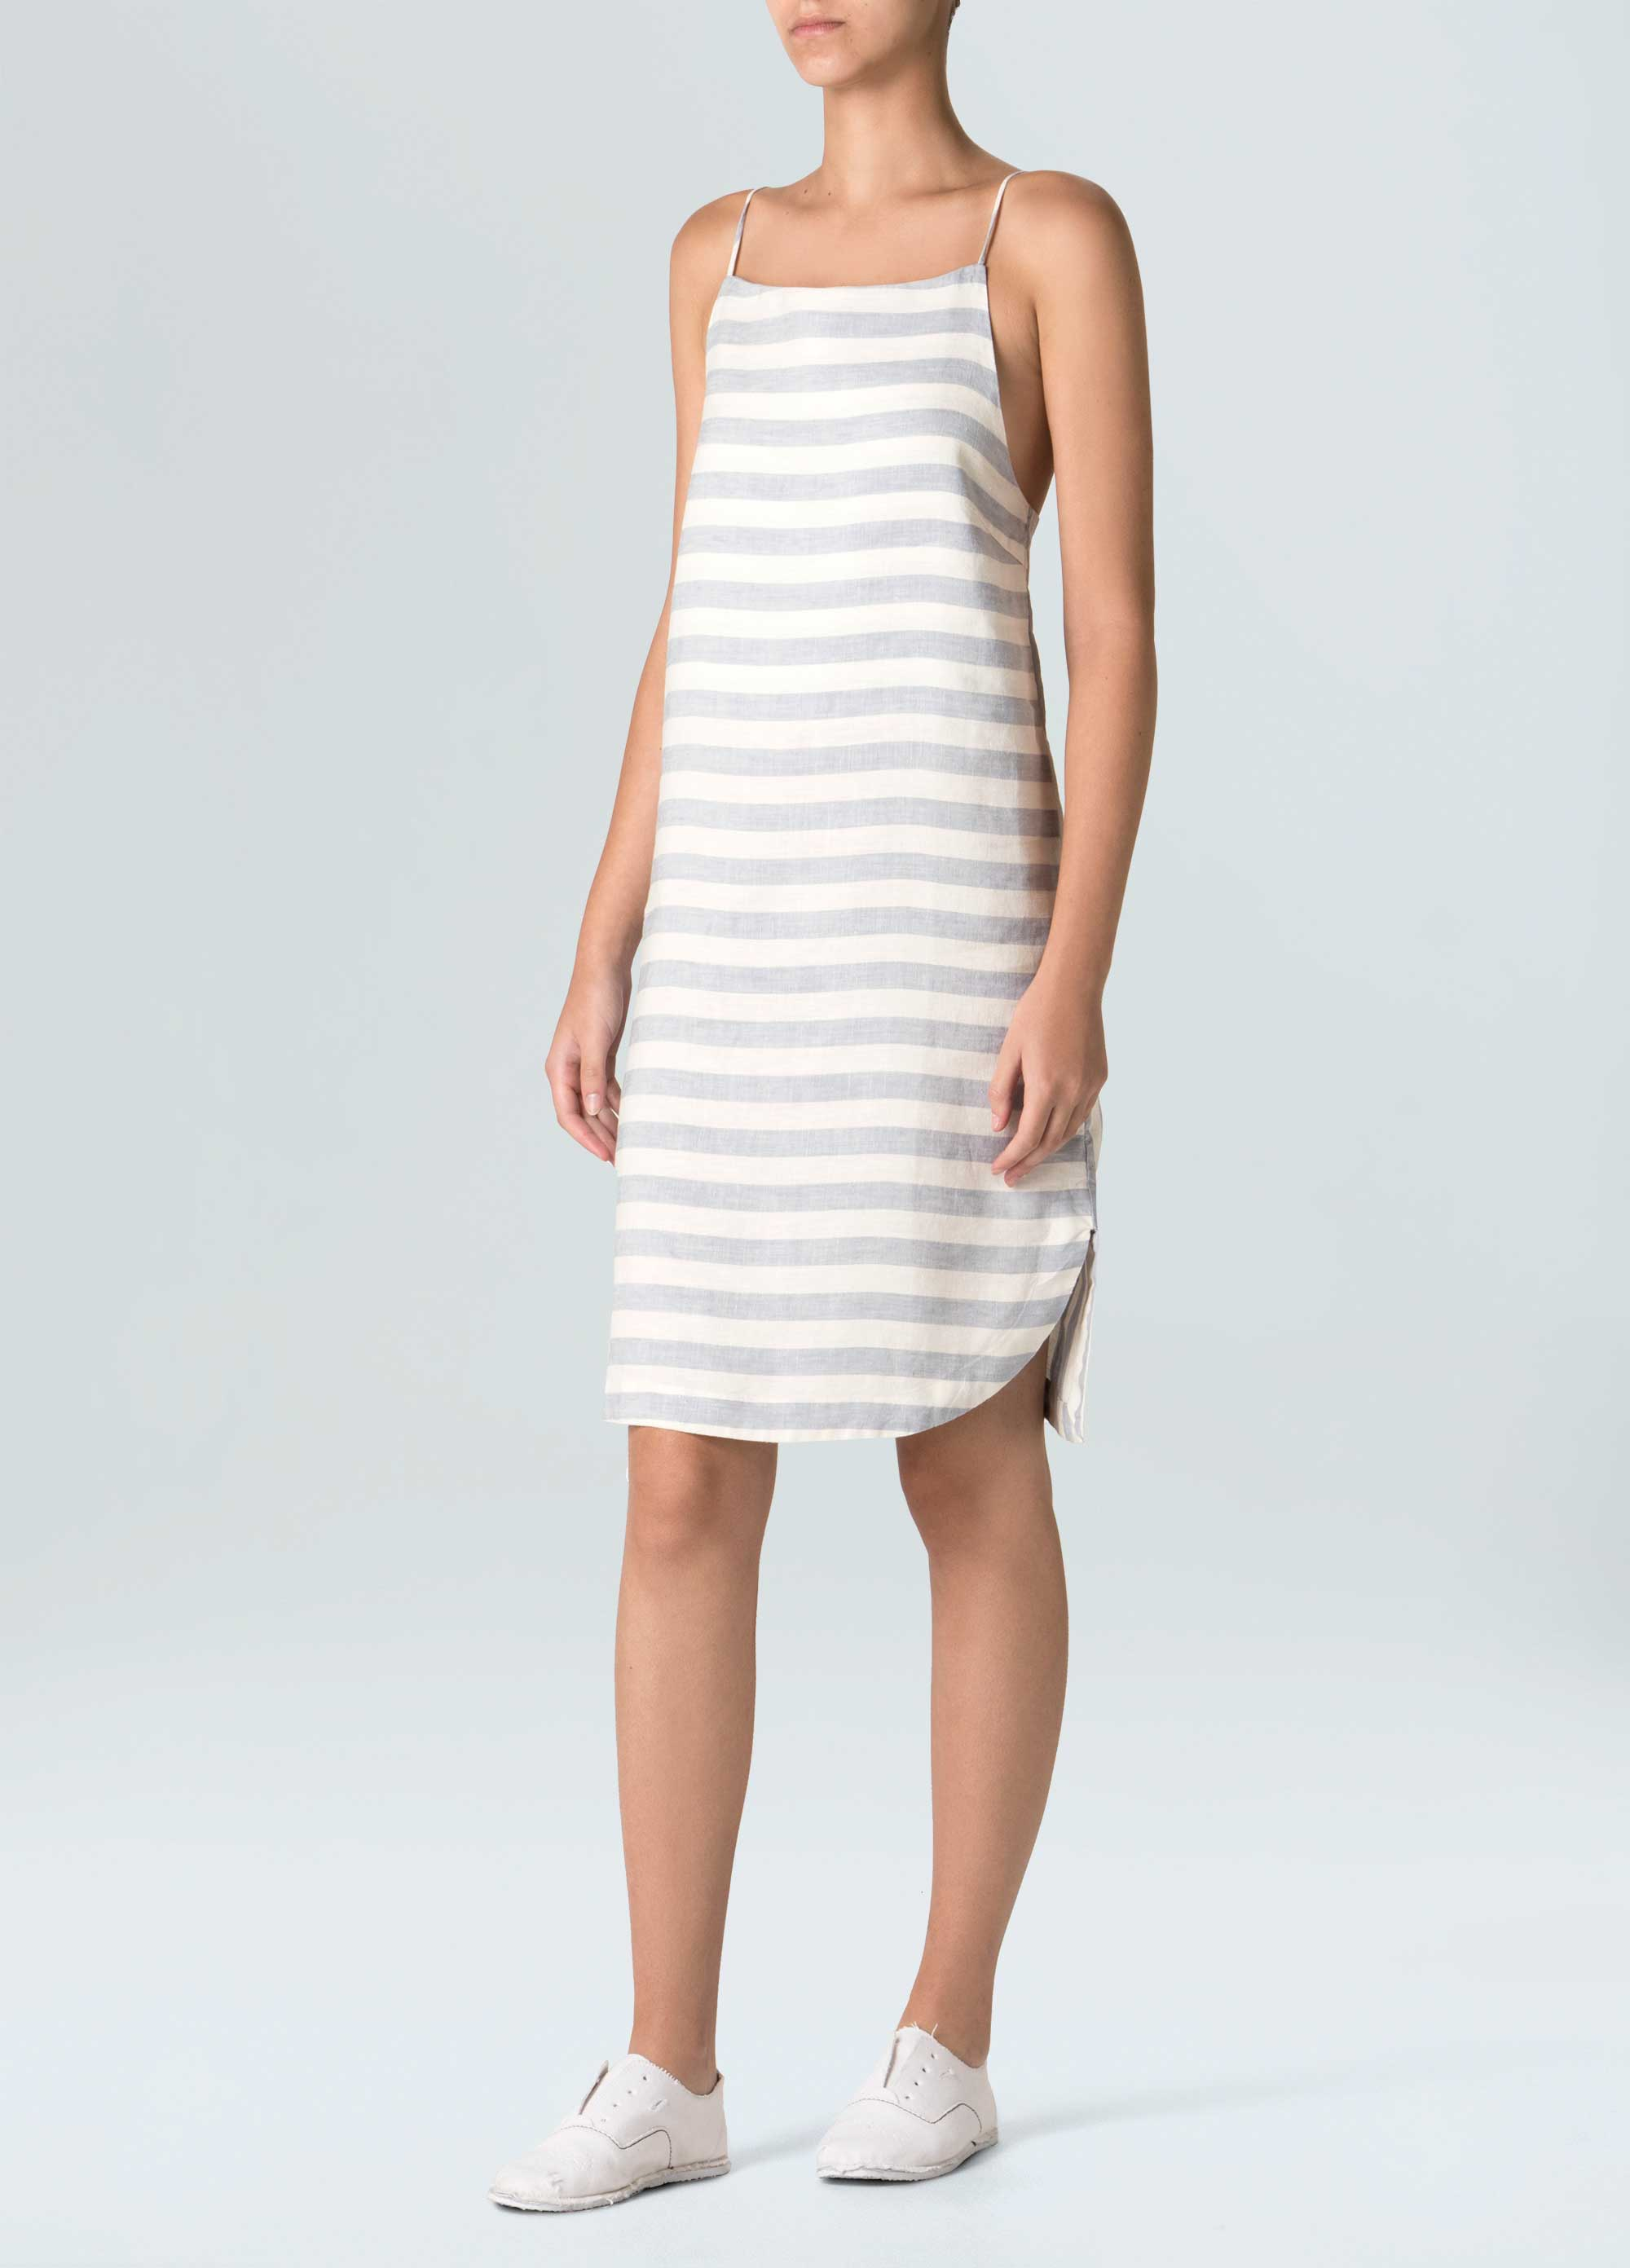 Women's Striped Linen Strap Dress